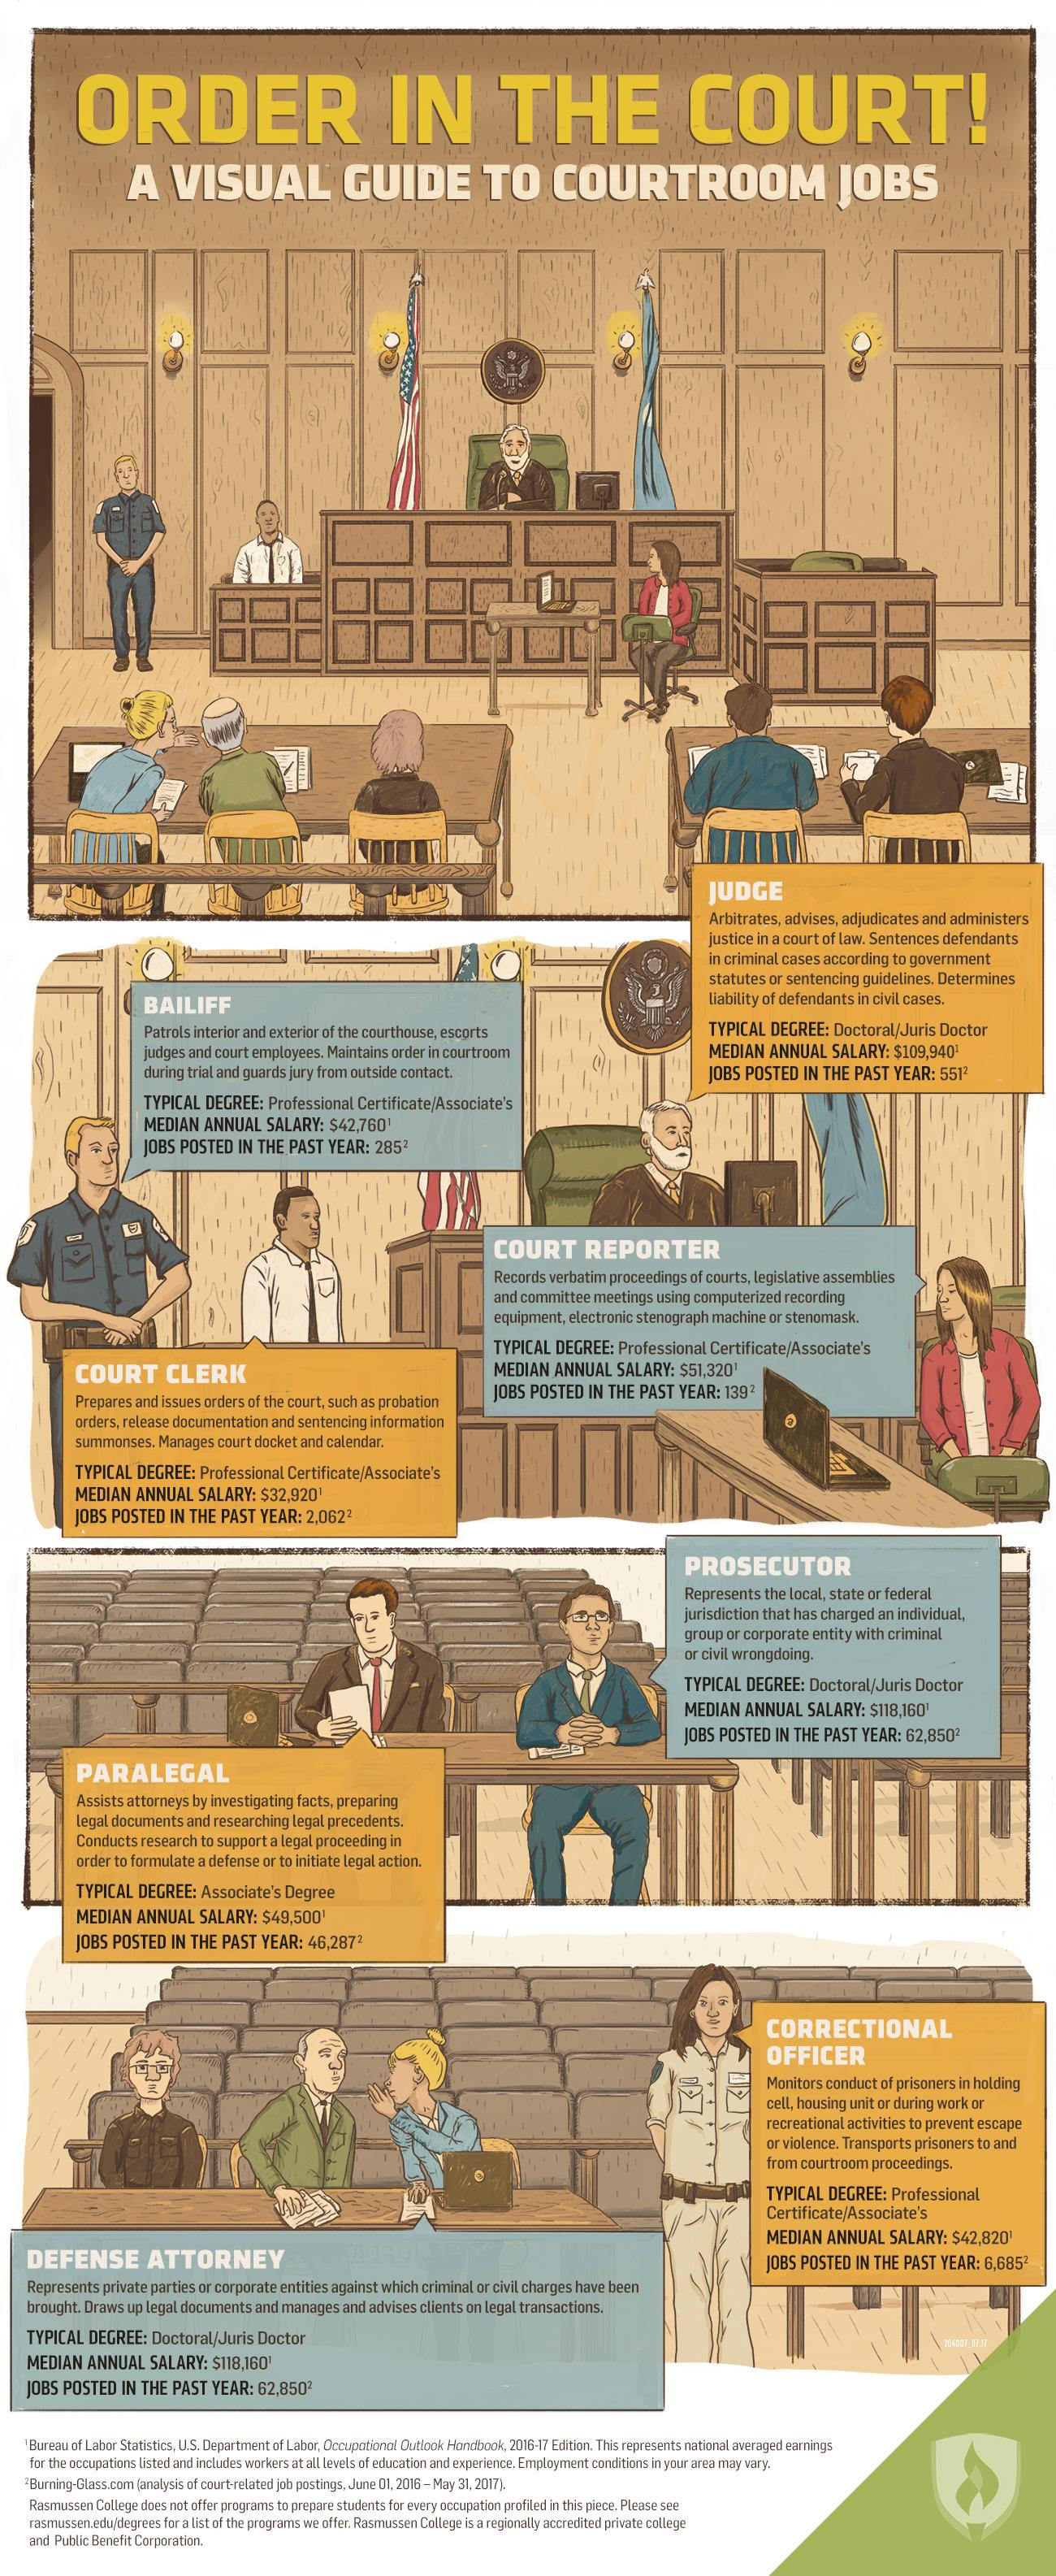 Order In The Court A Visual Guide To Courtroom Jobs Infographic